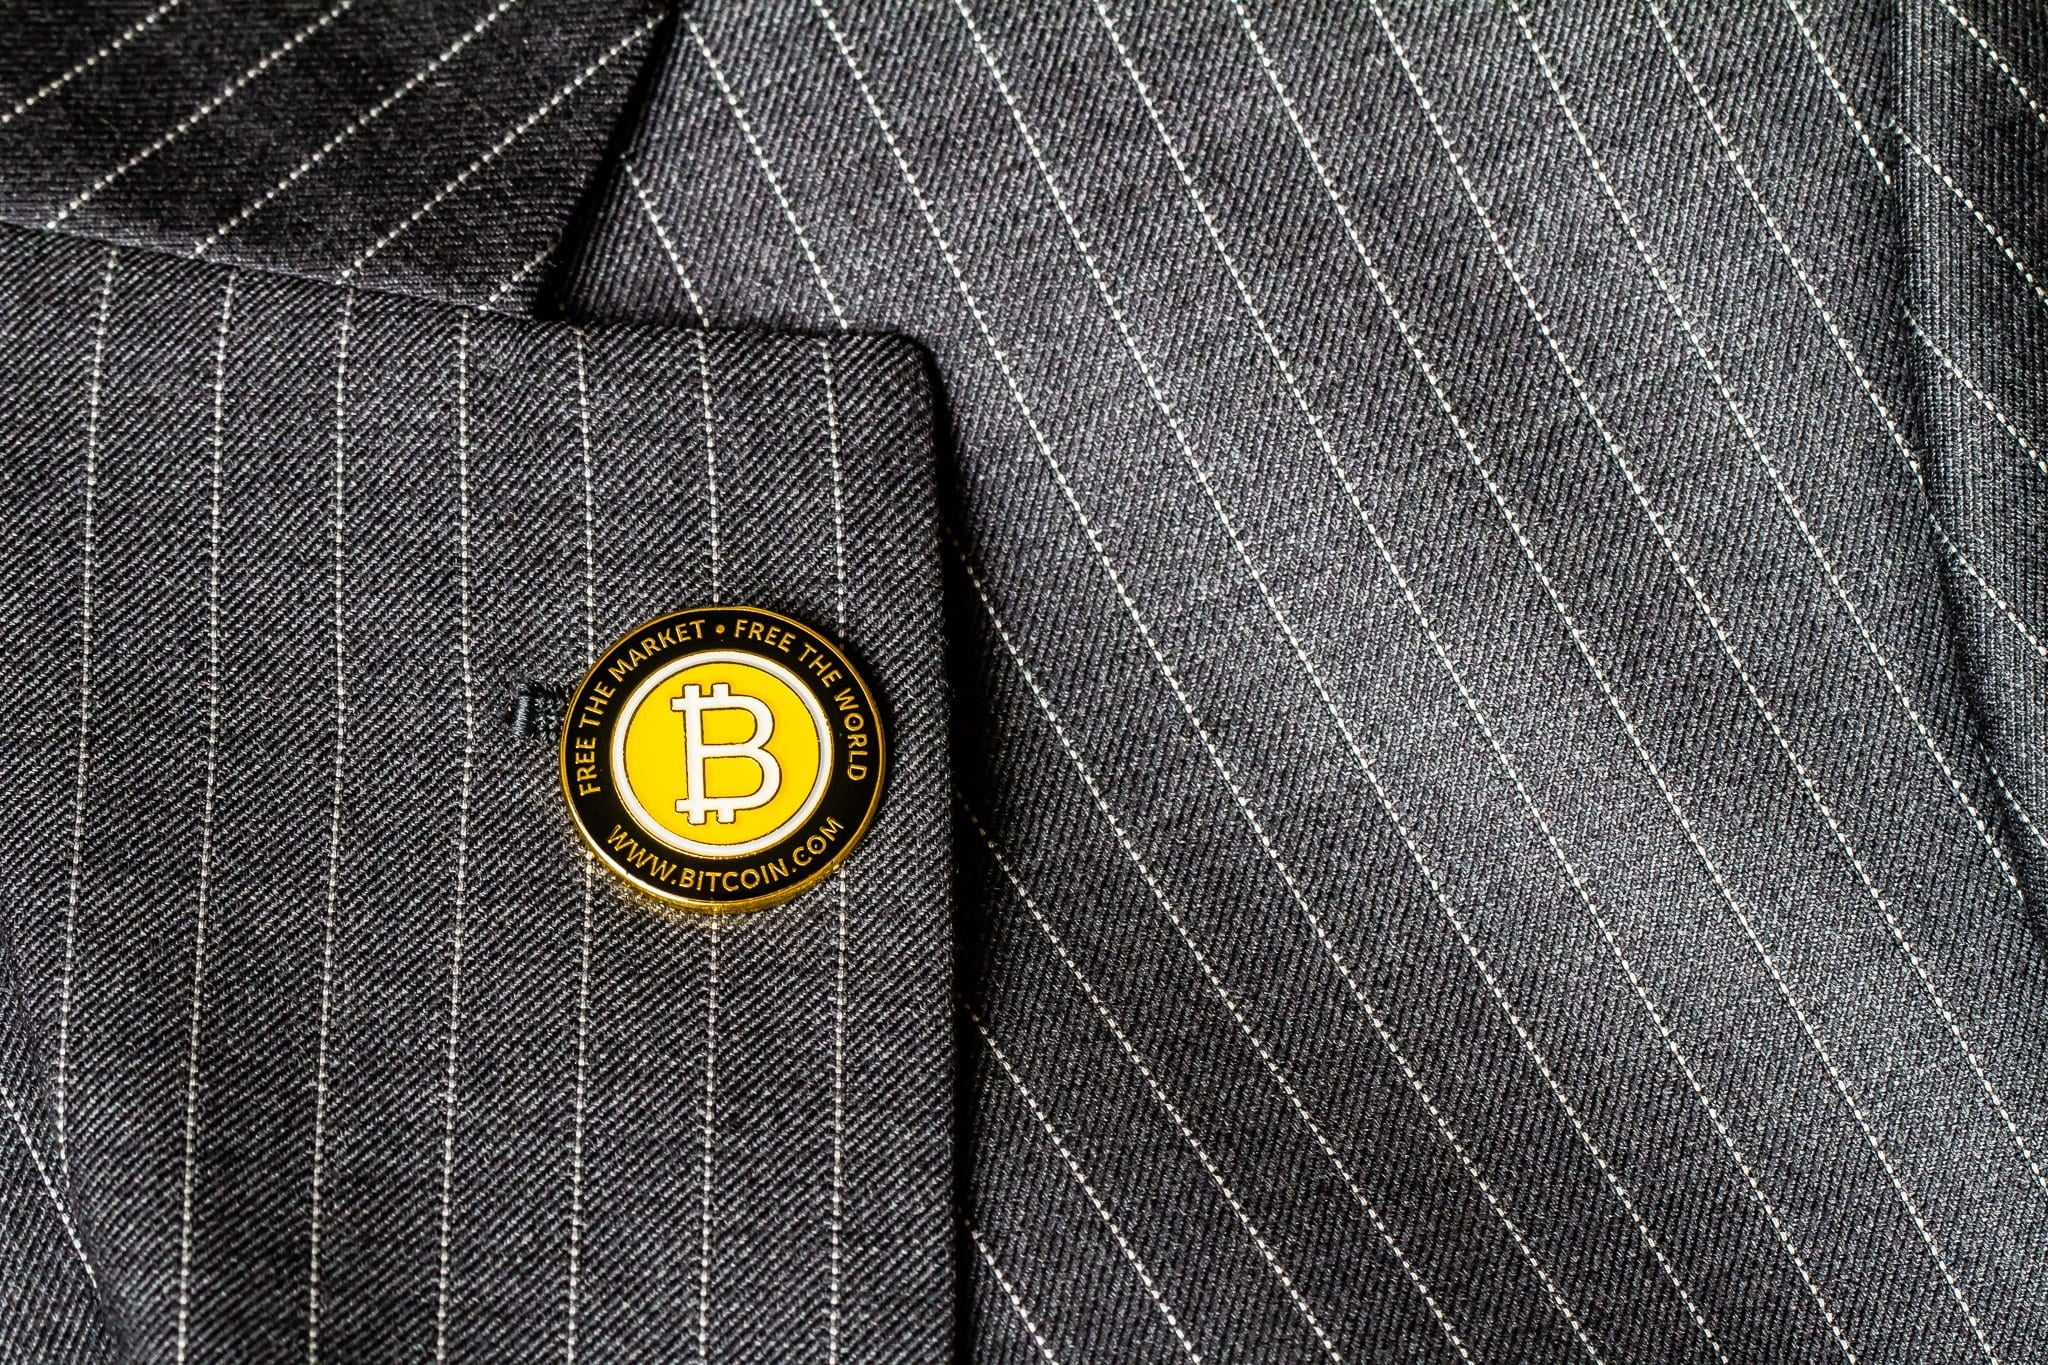 Single Bitcoin Pin